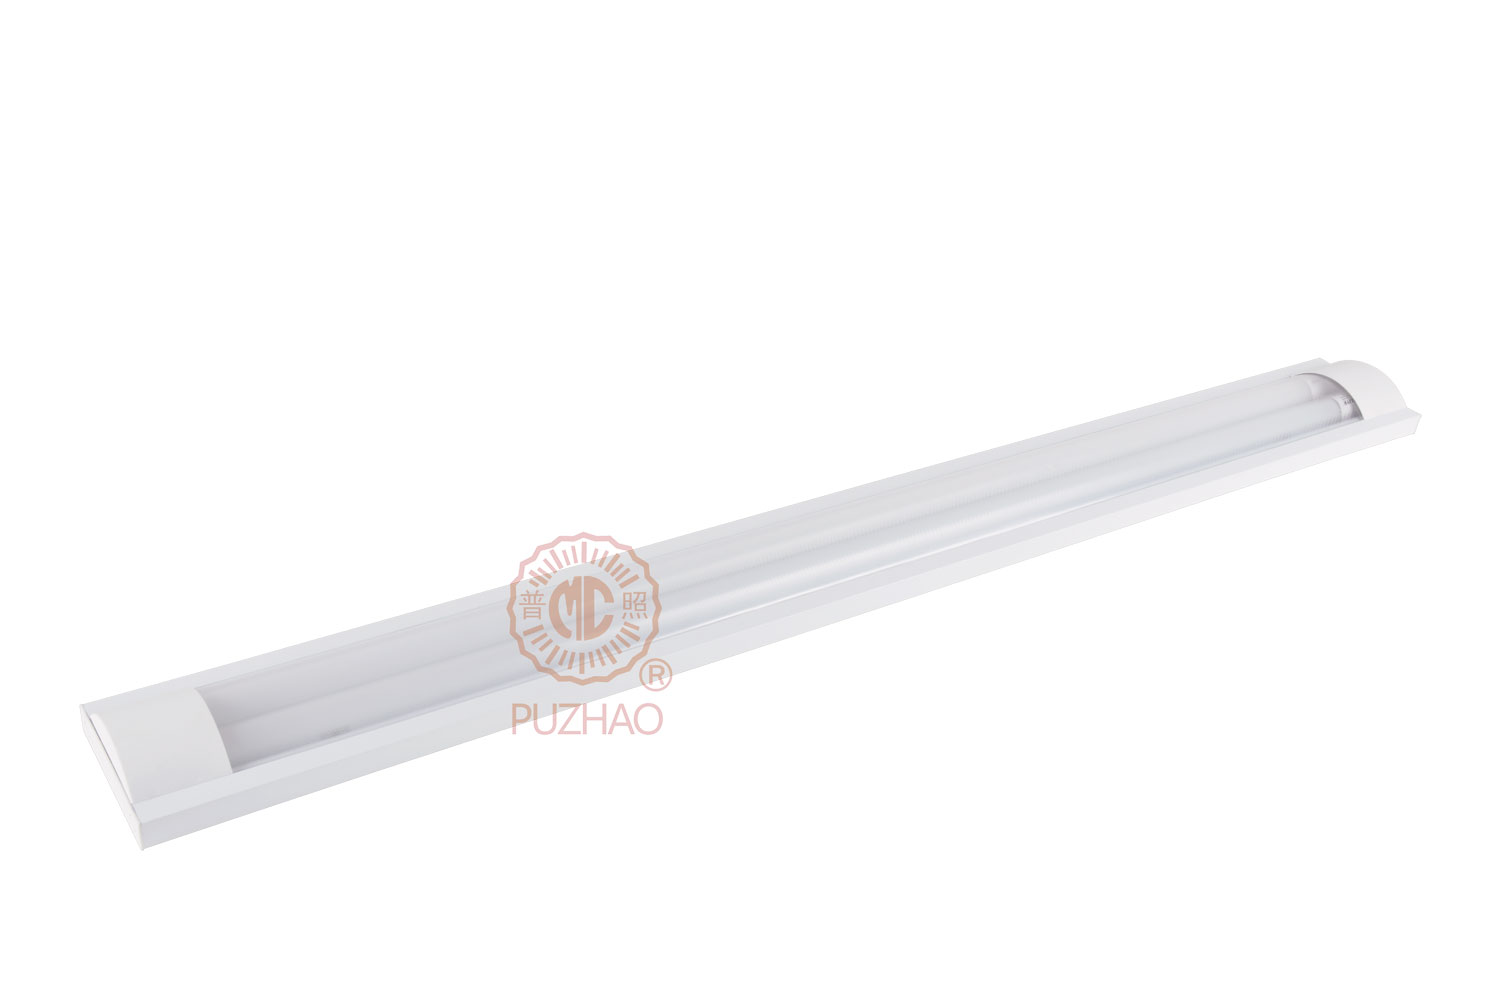 Ygl-lt8236- indoor lighting